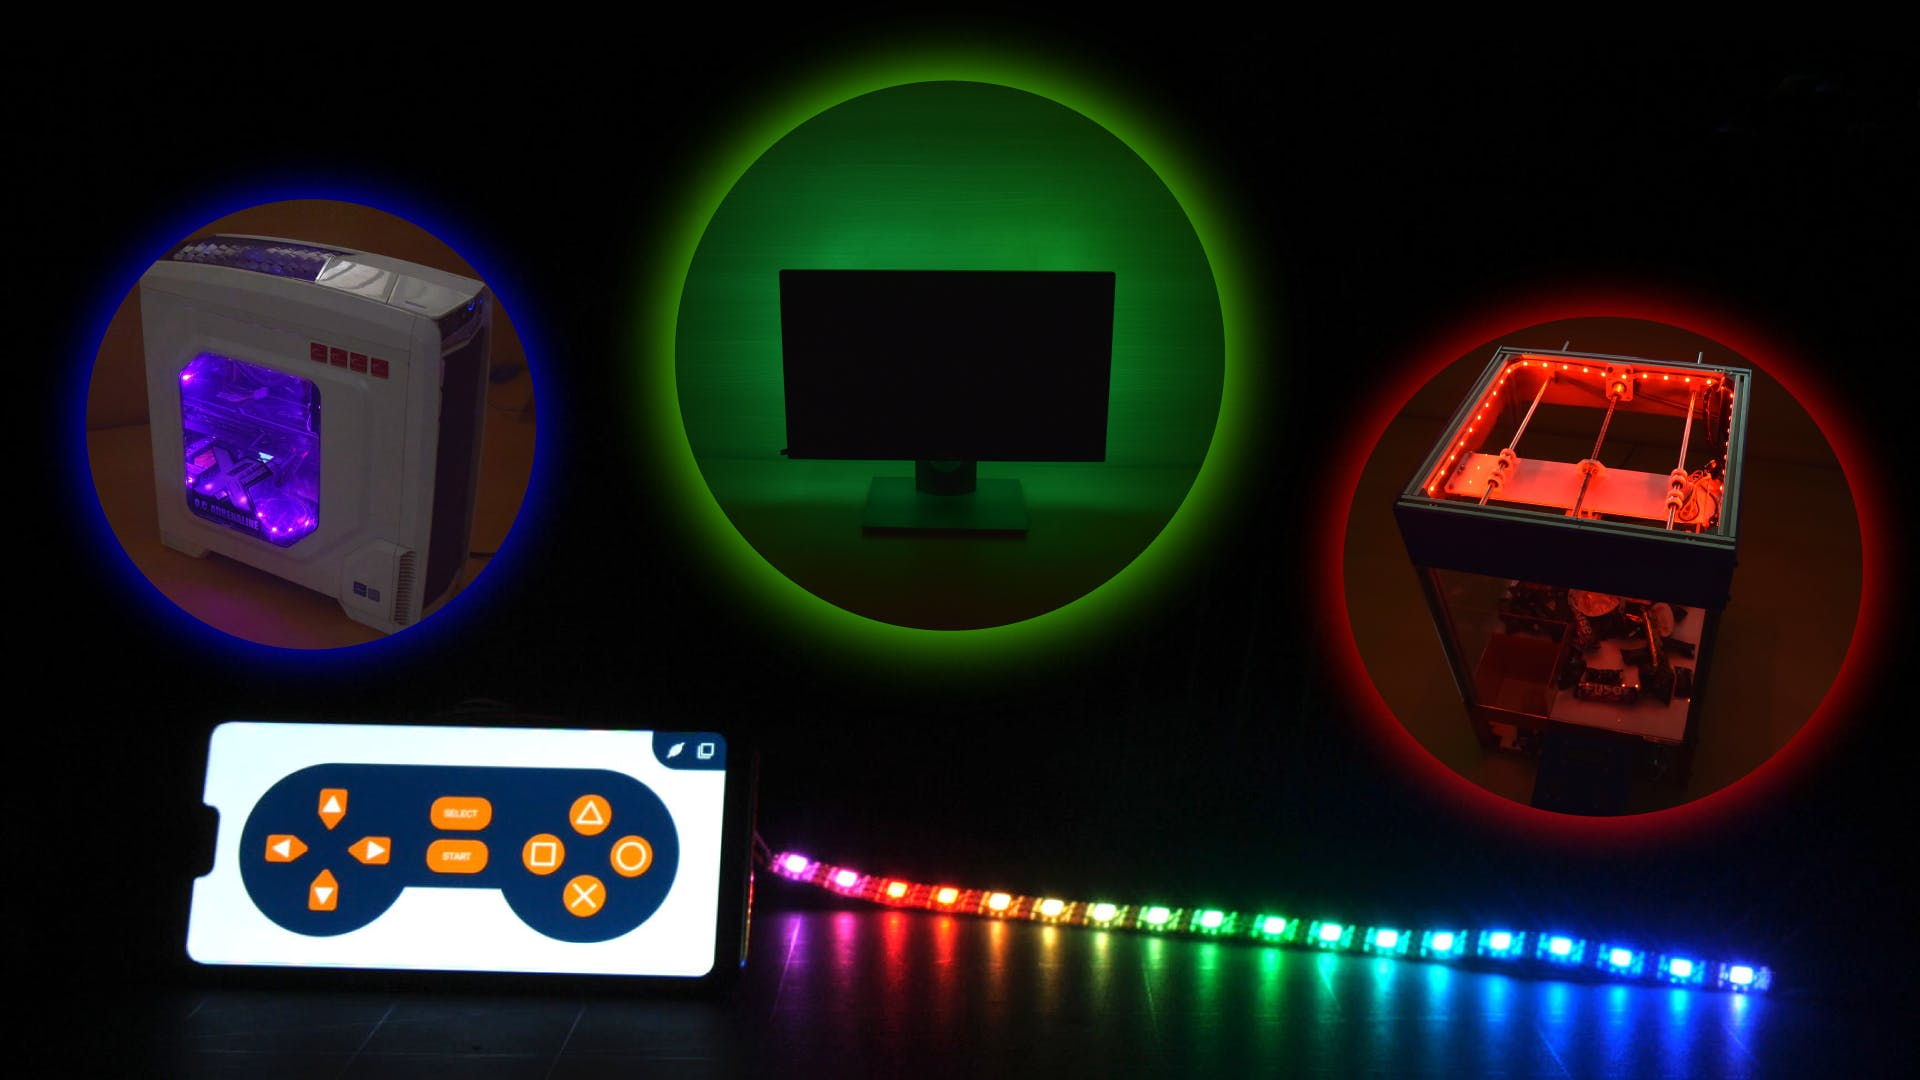 Control the RGB LED Lights Using Your Smartphone